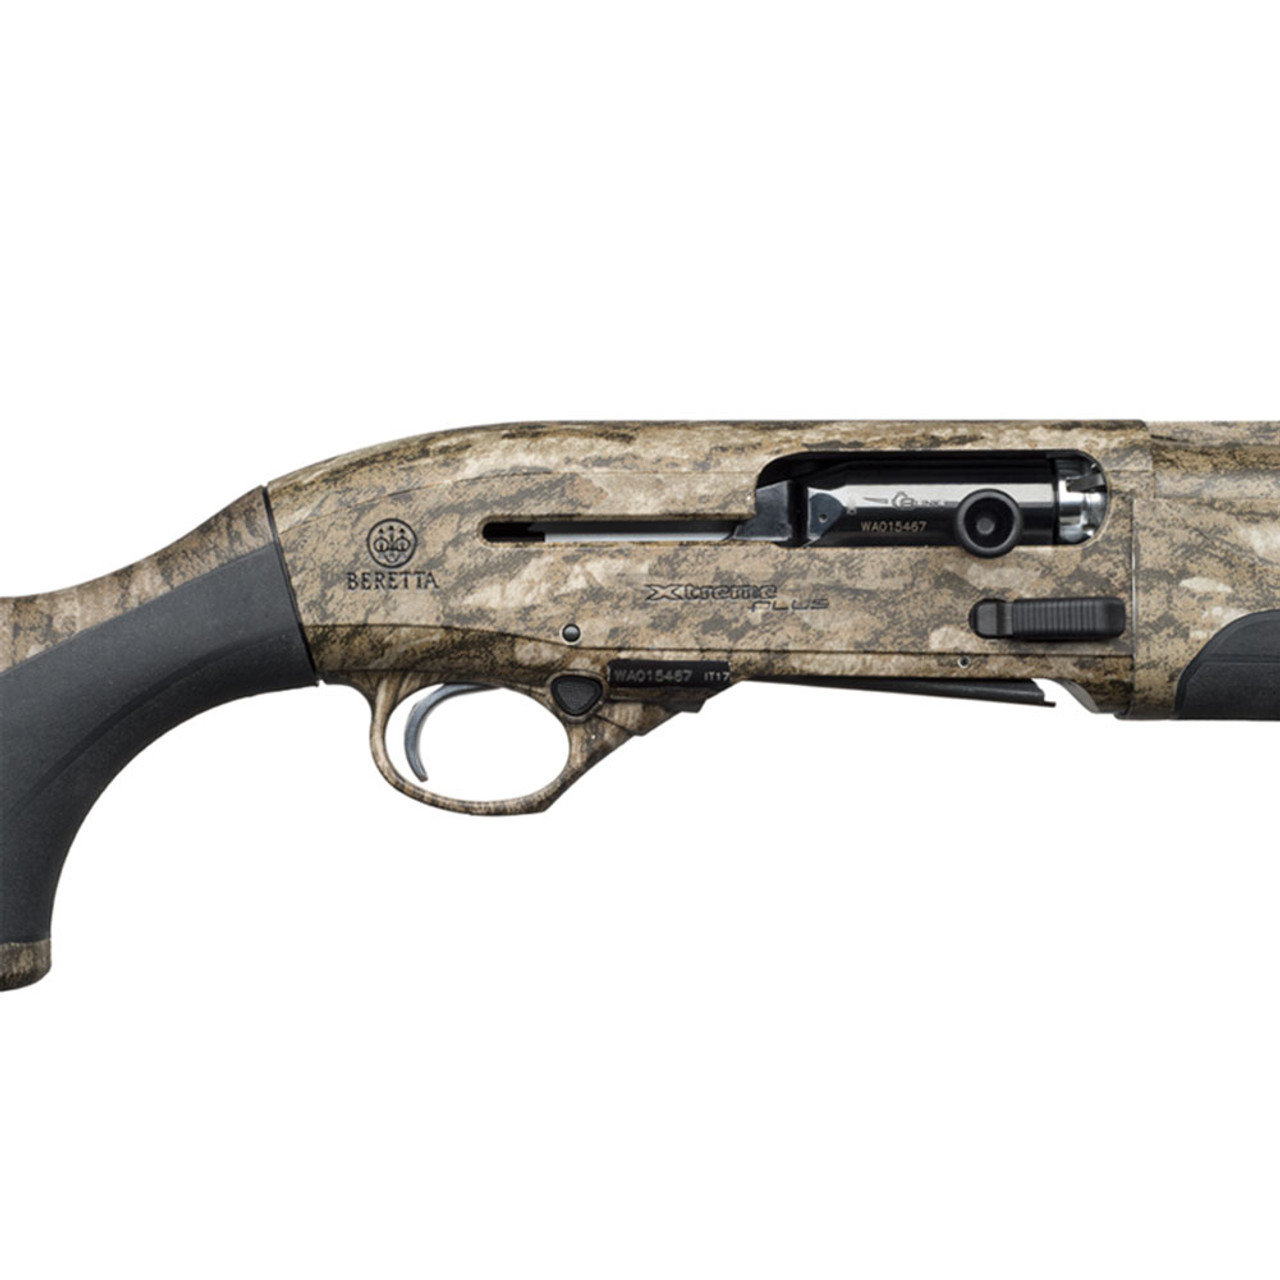 BERETTA A400 Xtreme Plus KO 12Ga 26in 3rd 3 5in Mossy Oak Bottomland  Semi-Automatic Shotgun (J42XU16)